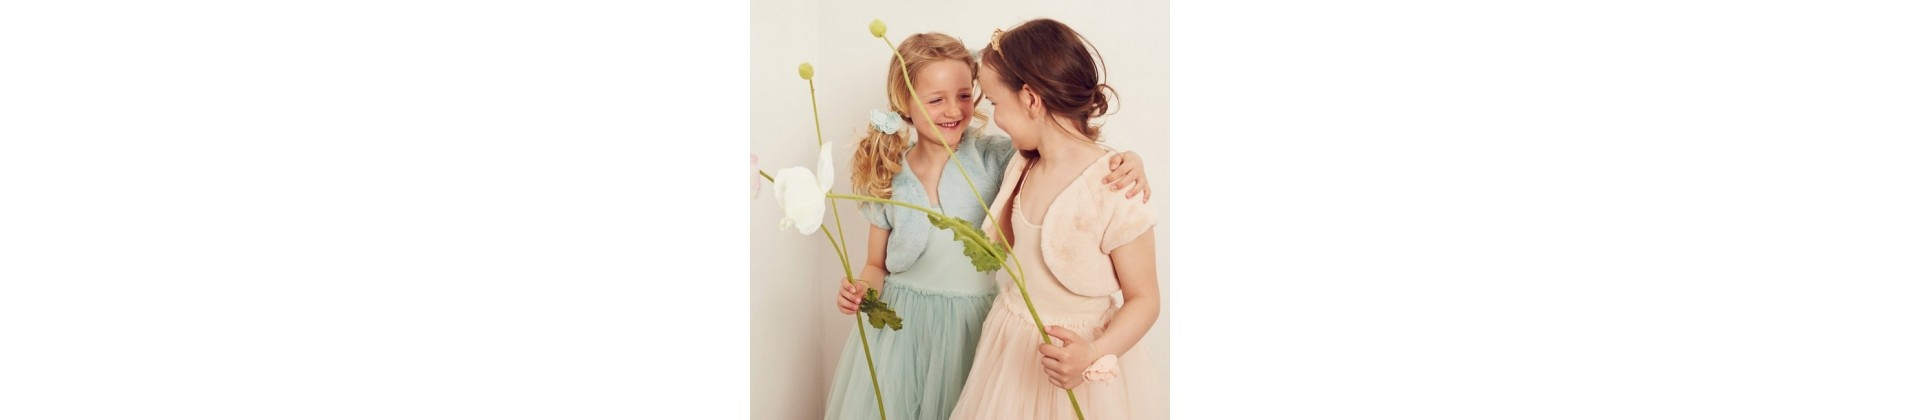 Best gift ideas for 8, 9, 10 year old girls